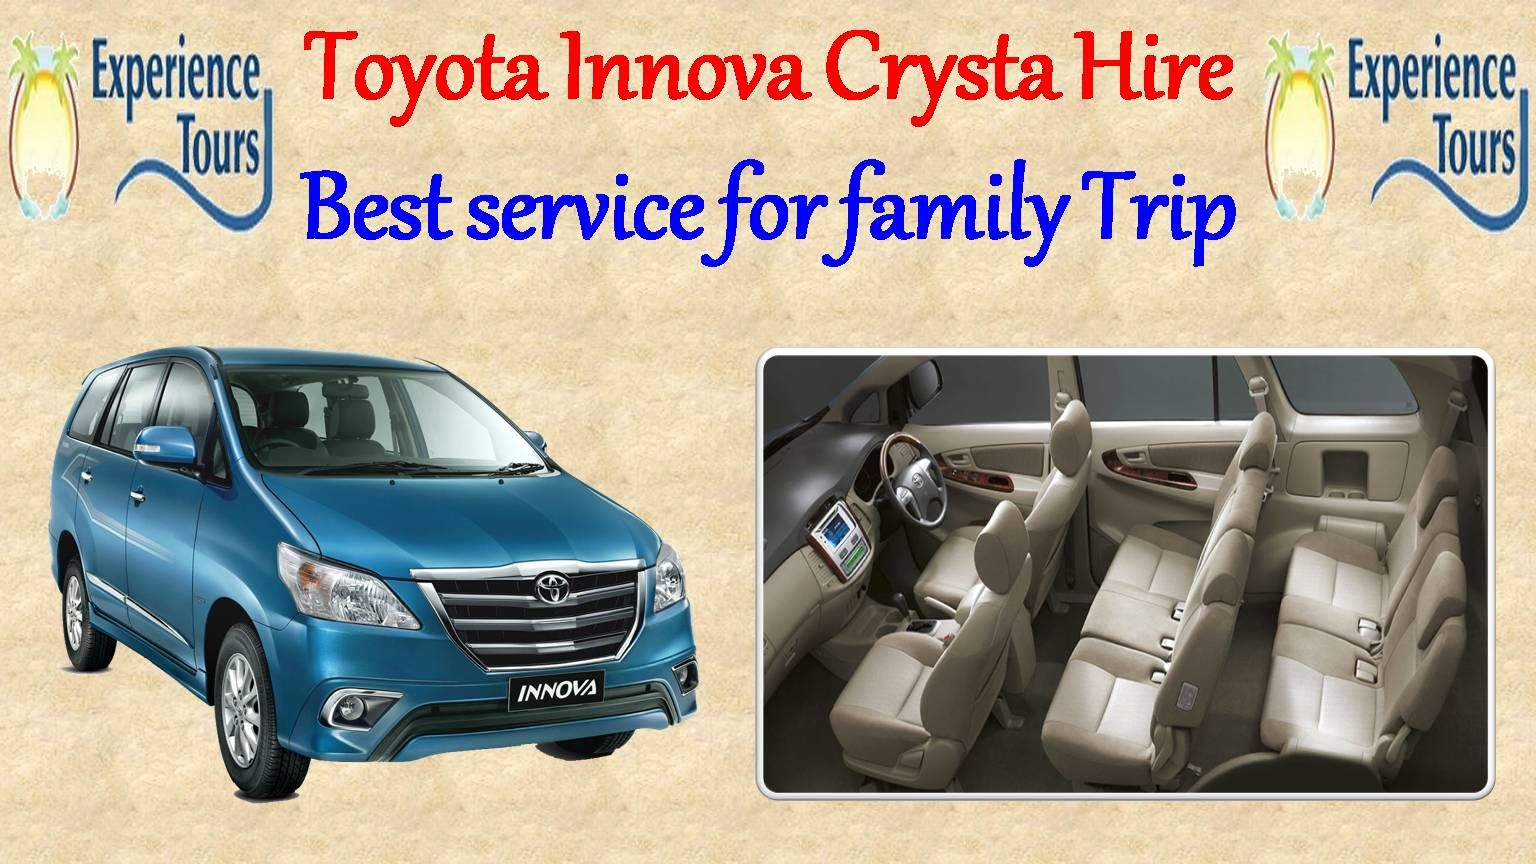 Experience Tours Is A Well Known Travel Company In Delhi That Has All Types Of Luxury Vehicles For Leisure And Toyota Innova Car Hire Travel Trailer Insurance